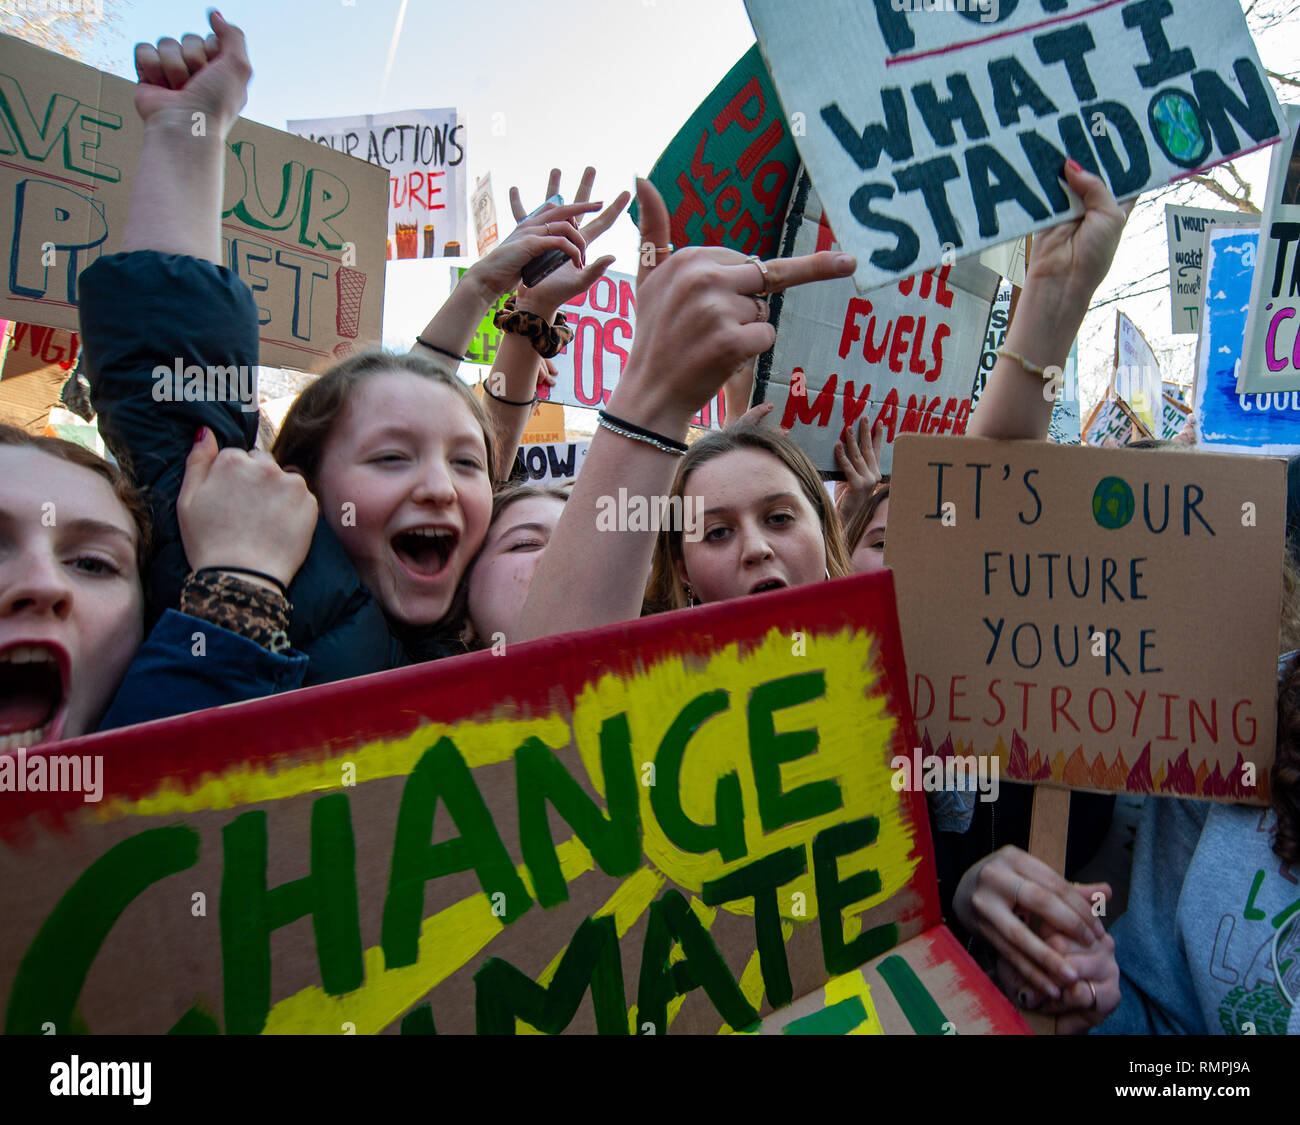 London, UK. 15th Feb, 2019. Protesters pose with placards Credit: Oliver Monk/Alamy Live News Stock Photo